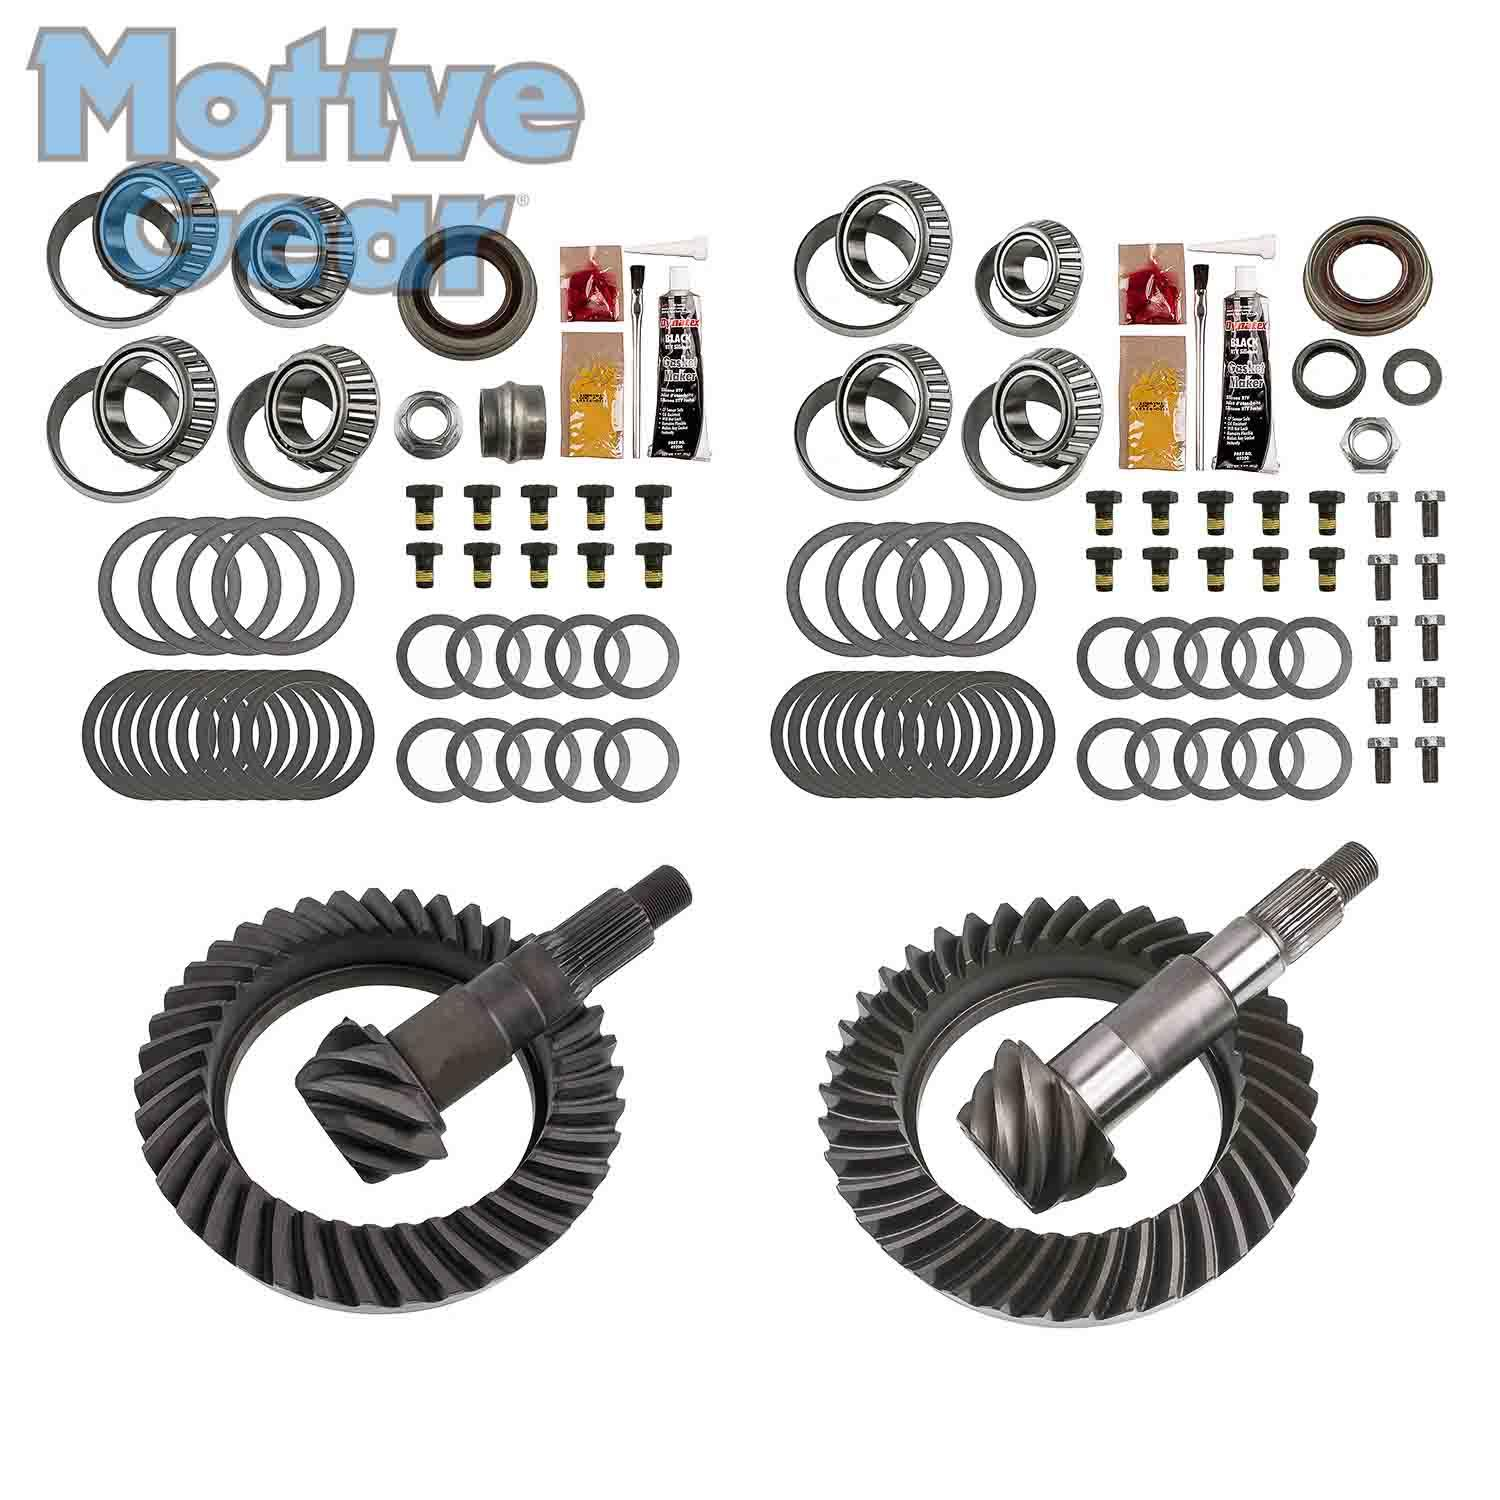 MGK-106 Motive Gear/Midwest Truck Differential Ring and Pinion DANA